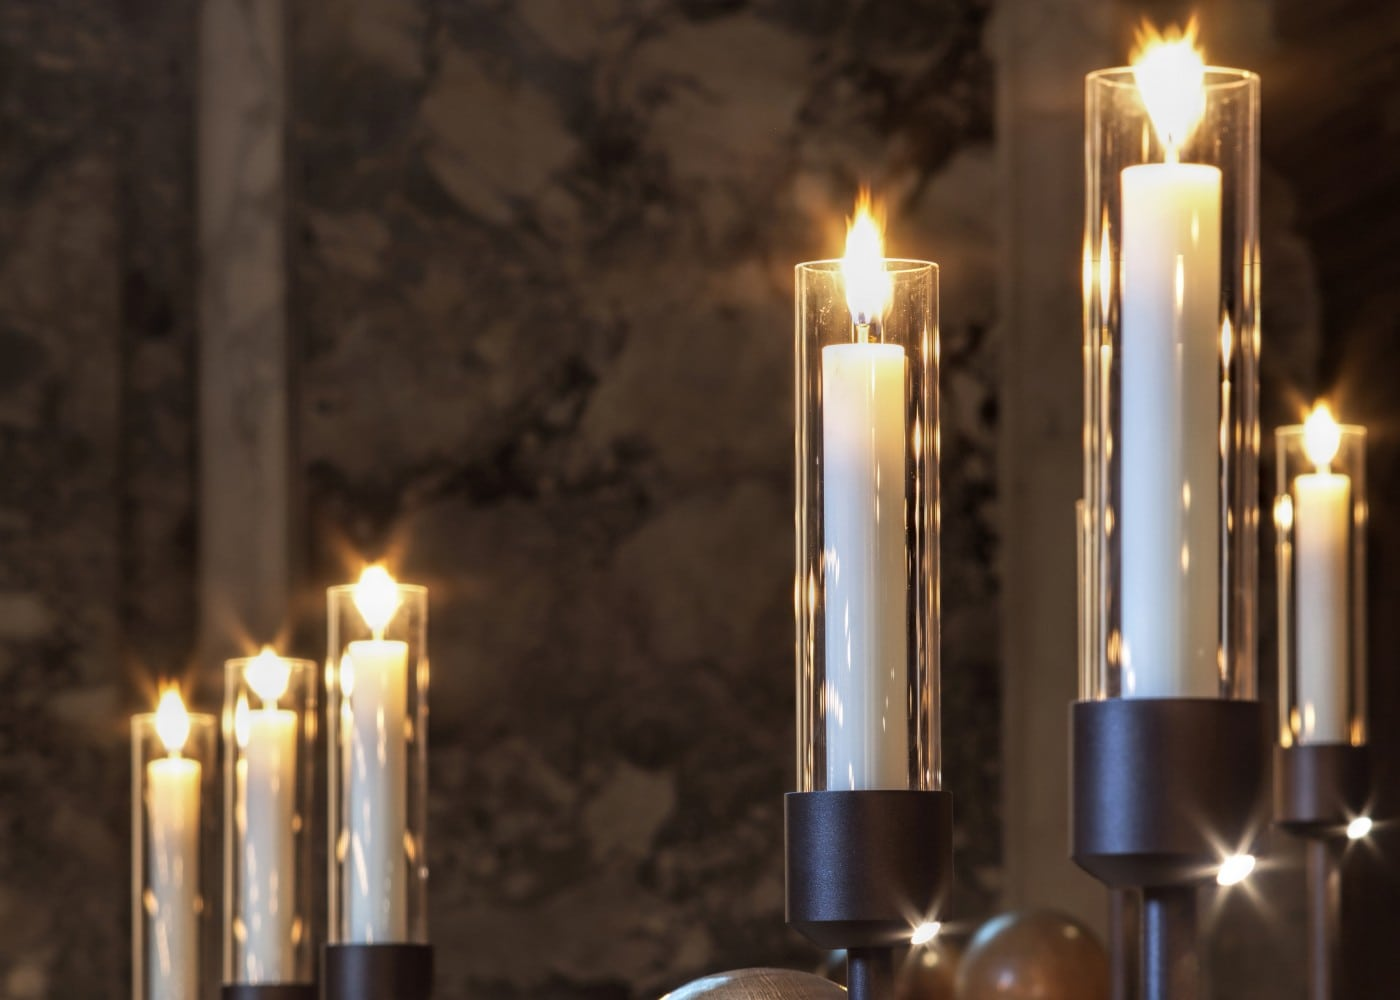 architectural lighting design: Brasenose College Chapel candles